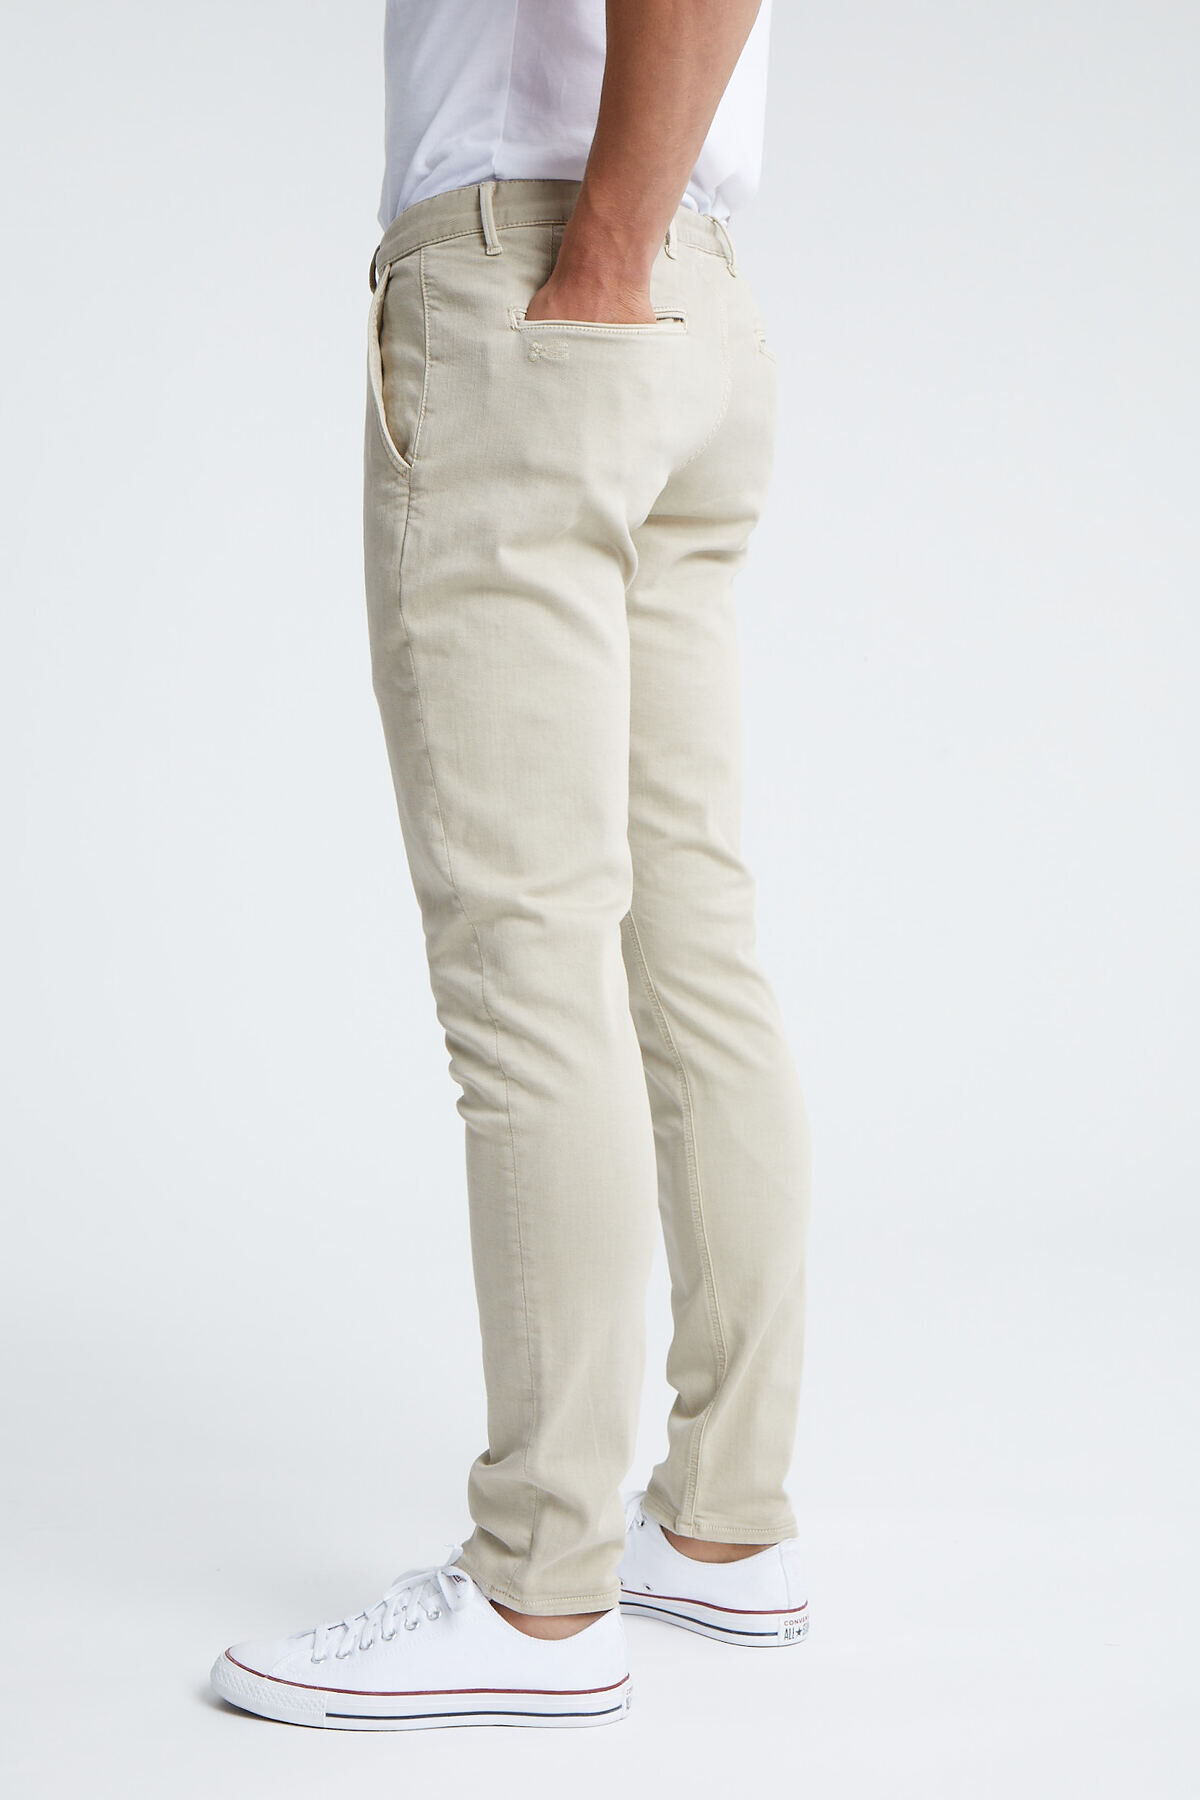 RAZOR CHINO Cotton & Tencel Blend - Slim Fit